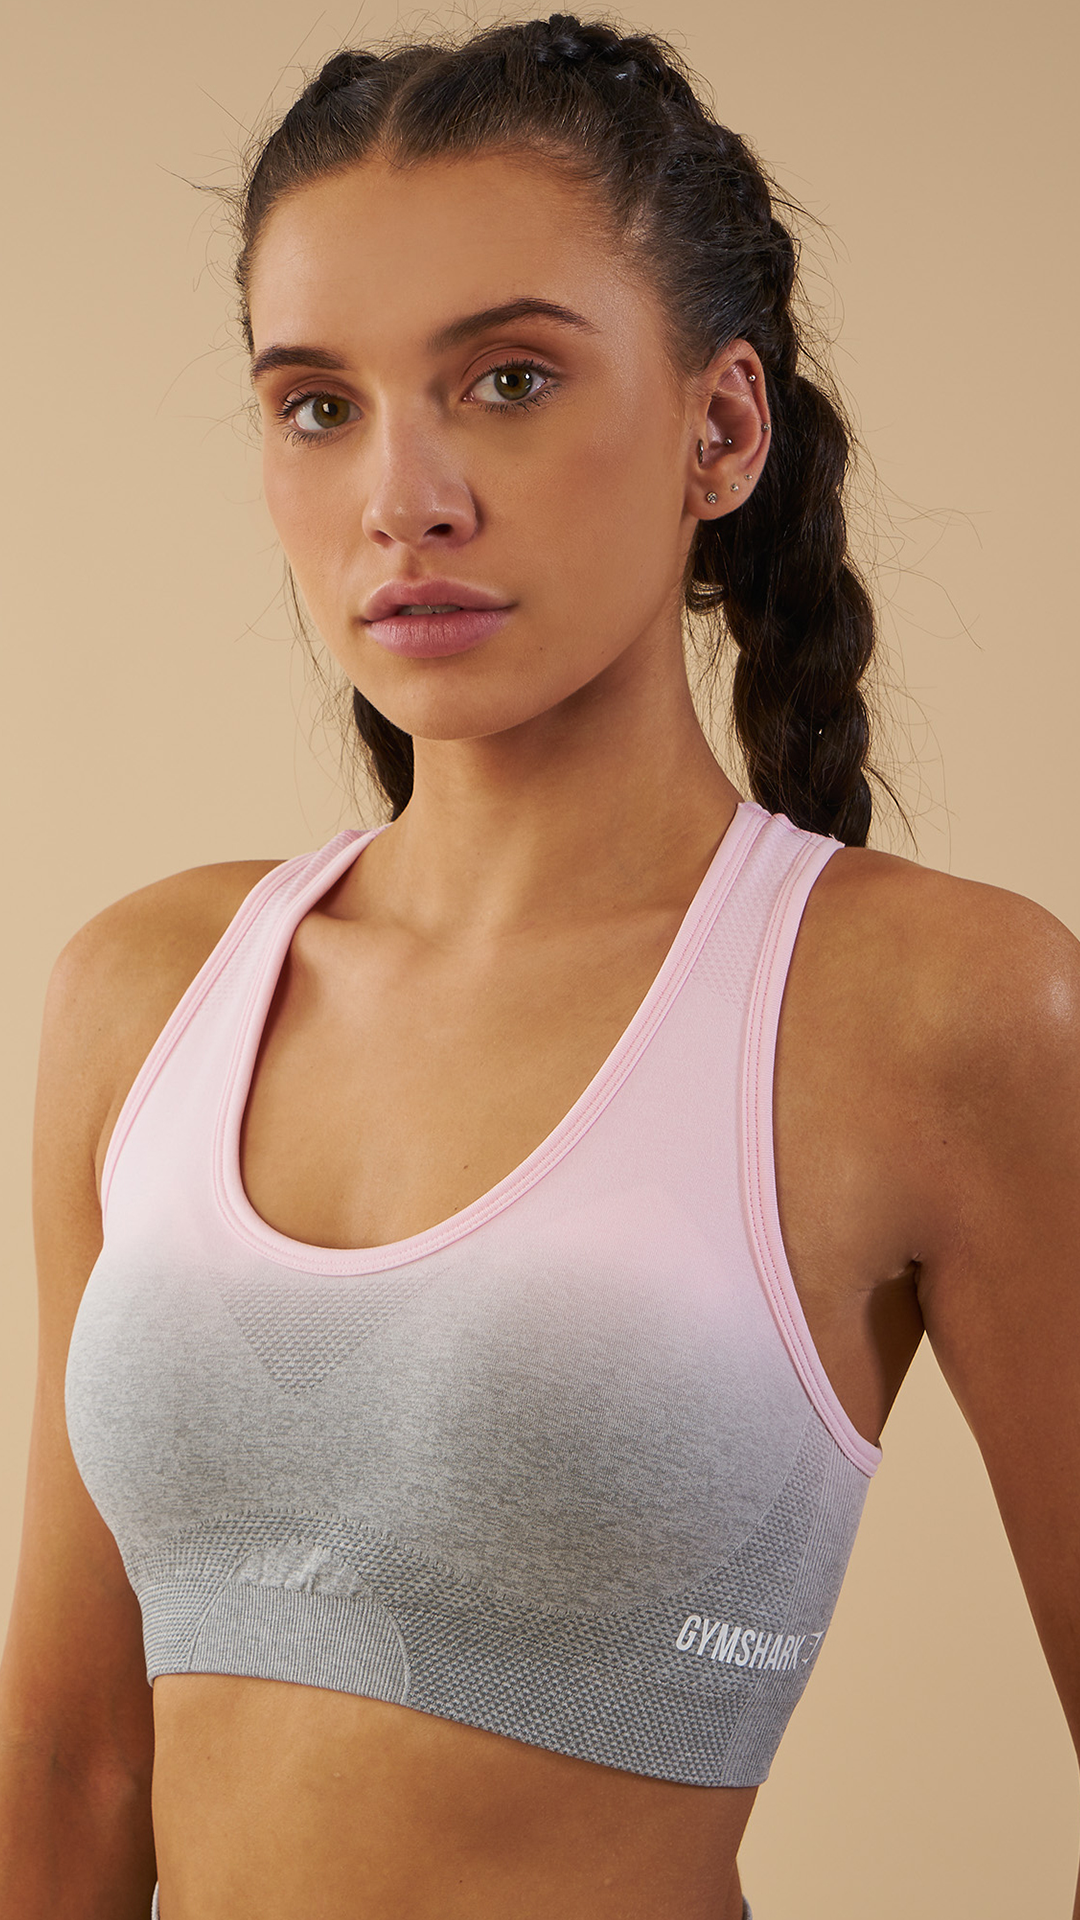 4db3a7dfbf416 Style and support. Soft and stunning with a second-skin feel